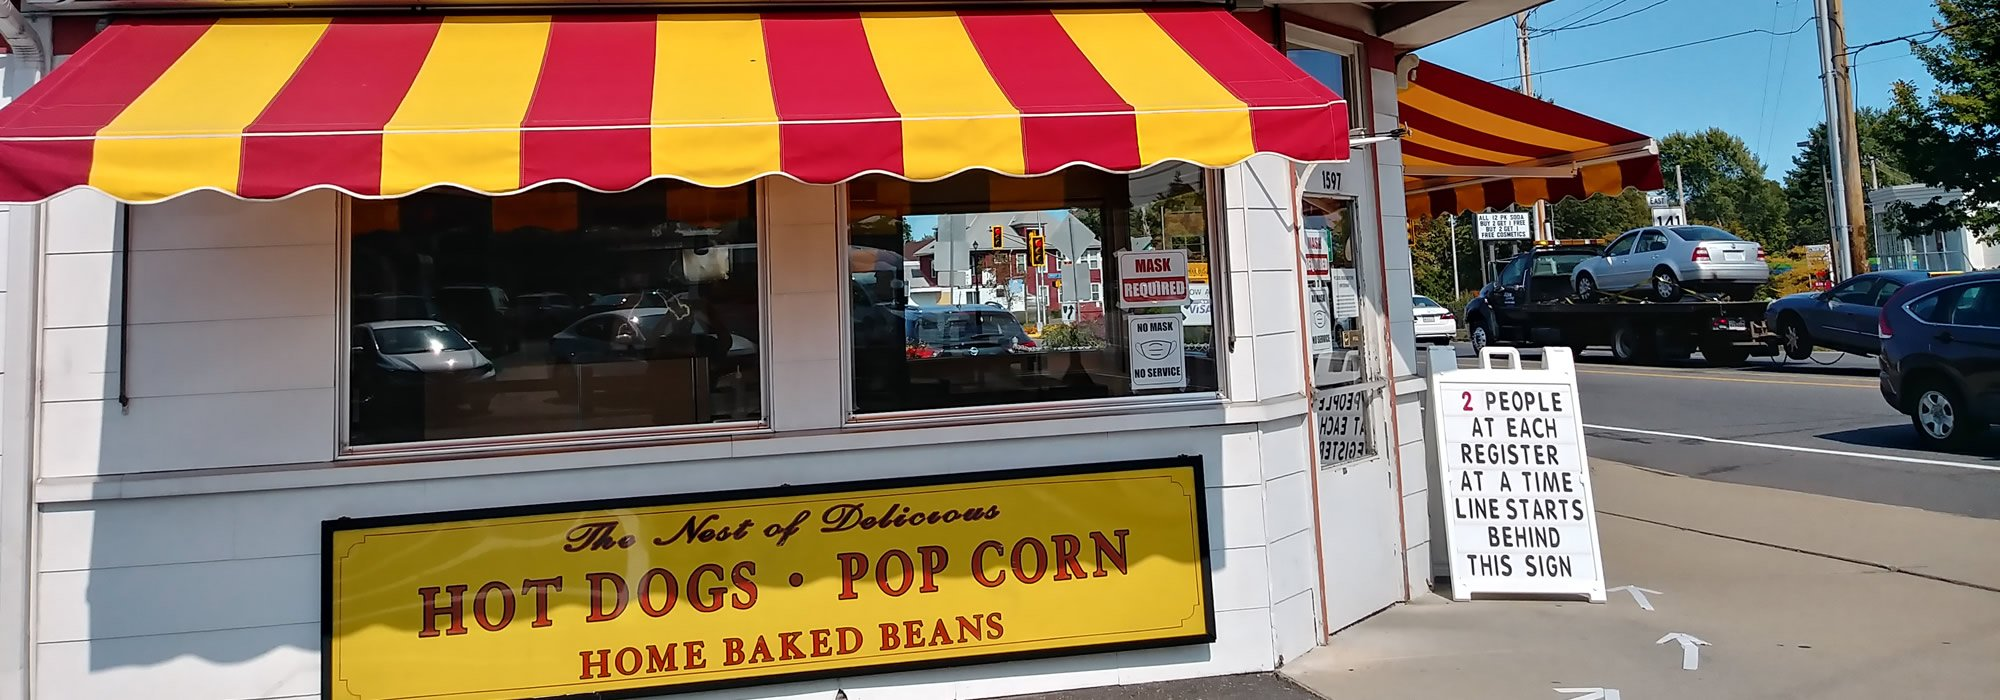 Nick's Nest - Holyoke, MA - Hot Dogs, Pop Corn, Home Baked Beans and more.